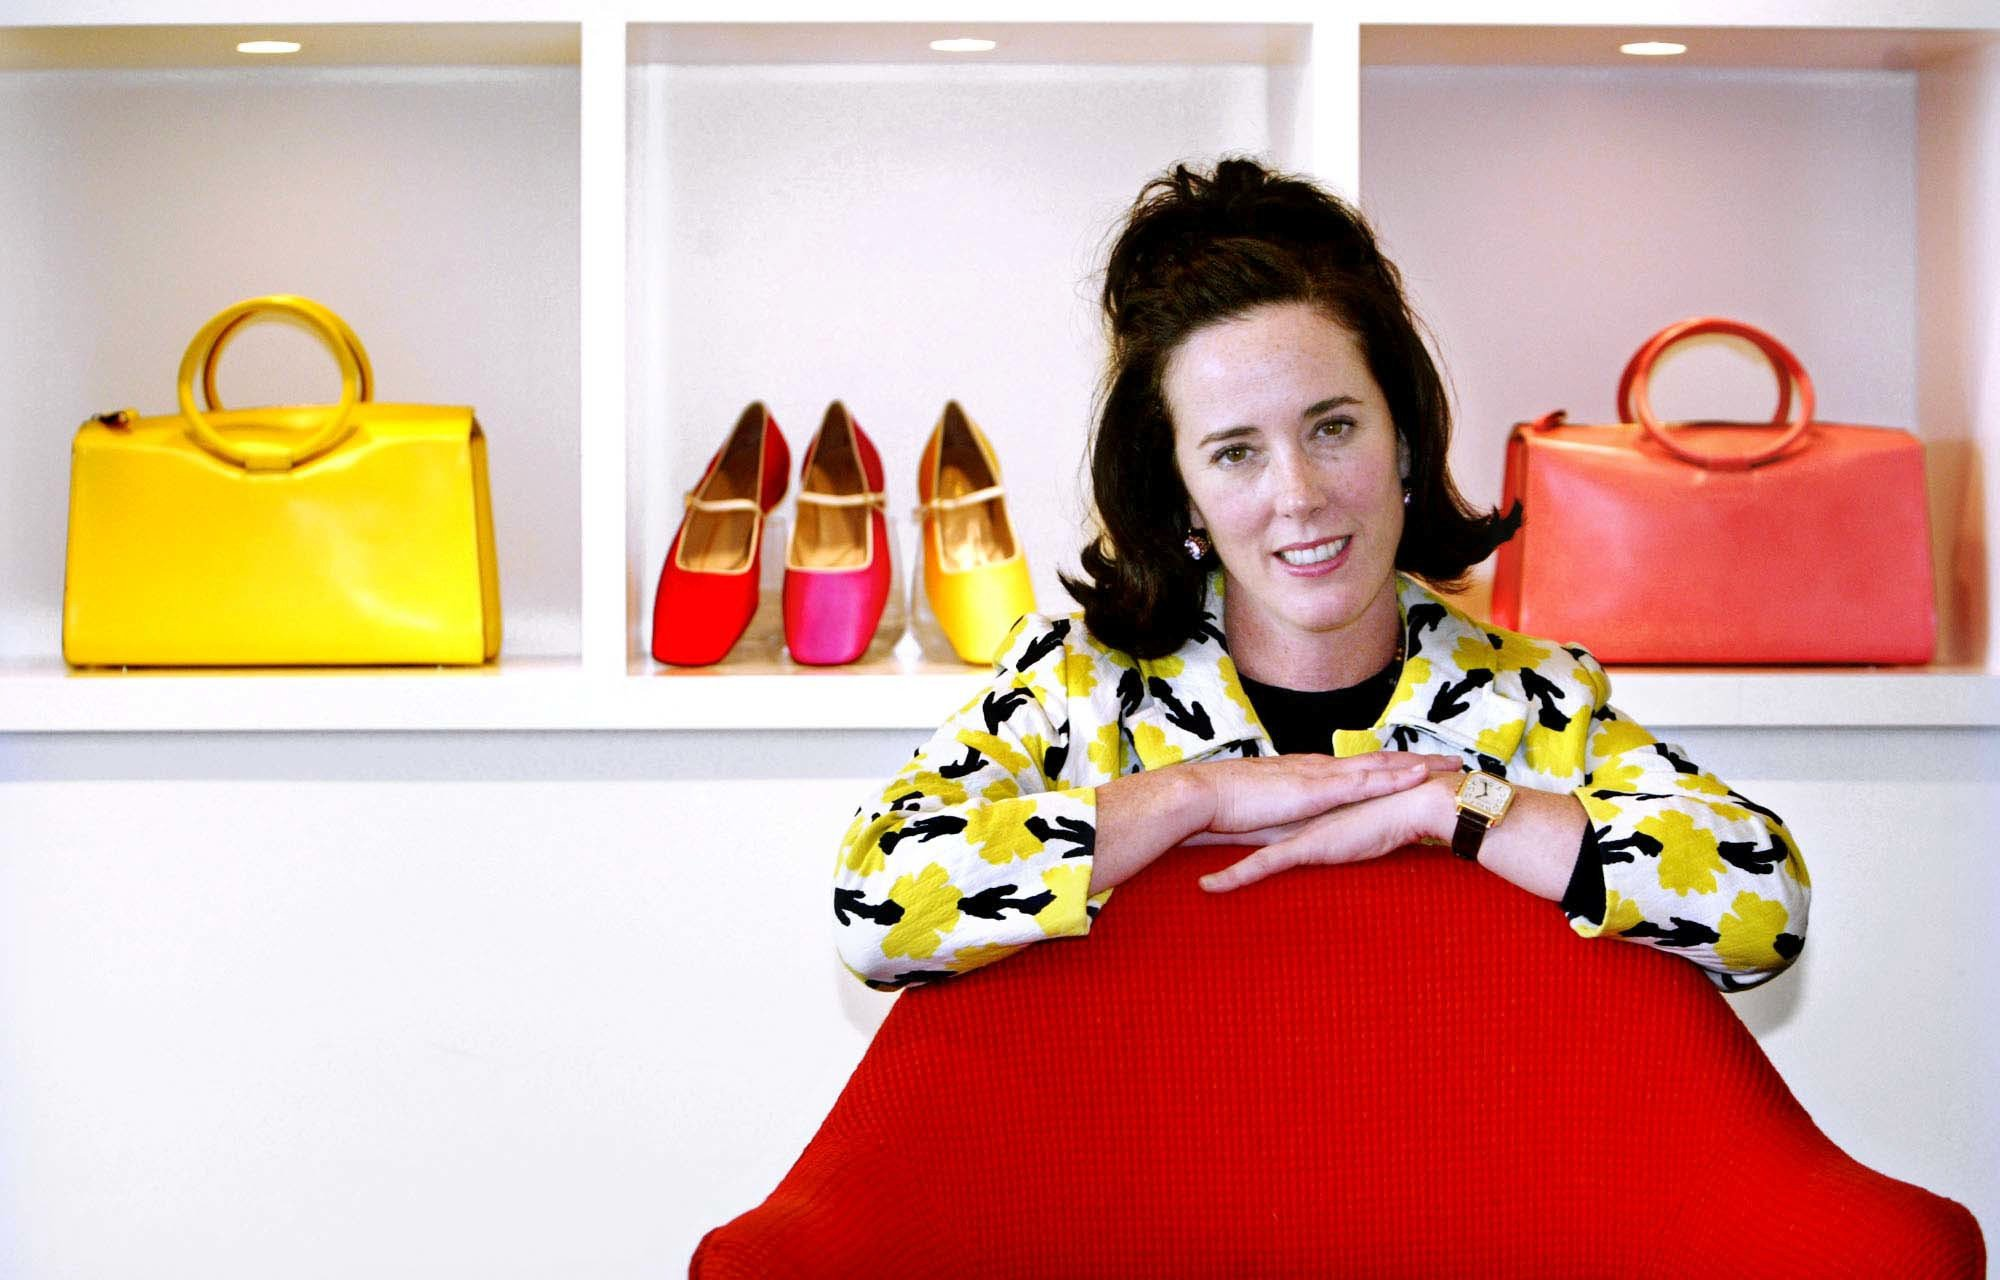 In this May 13, 2004 file photo, designer Kate Spade poses with handbags and shoes from her next collection in New York